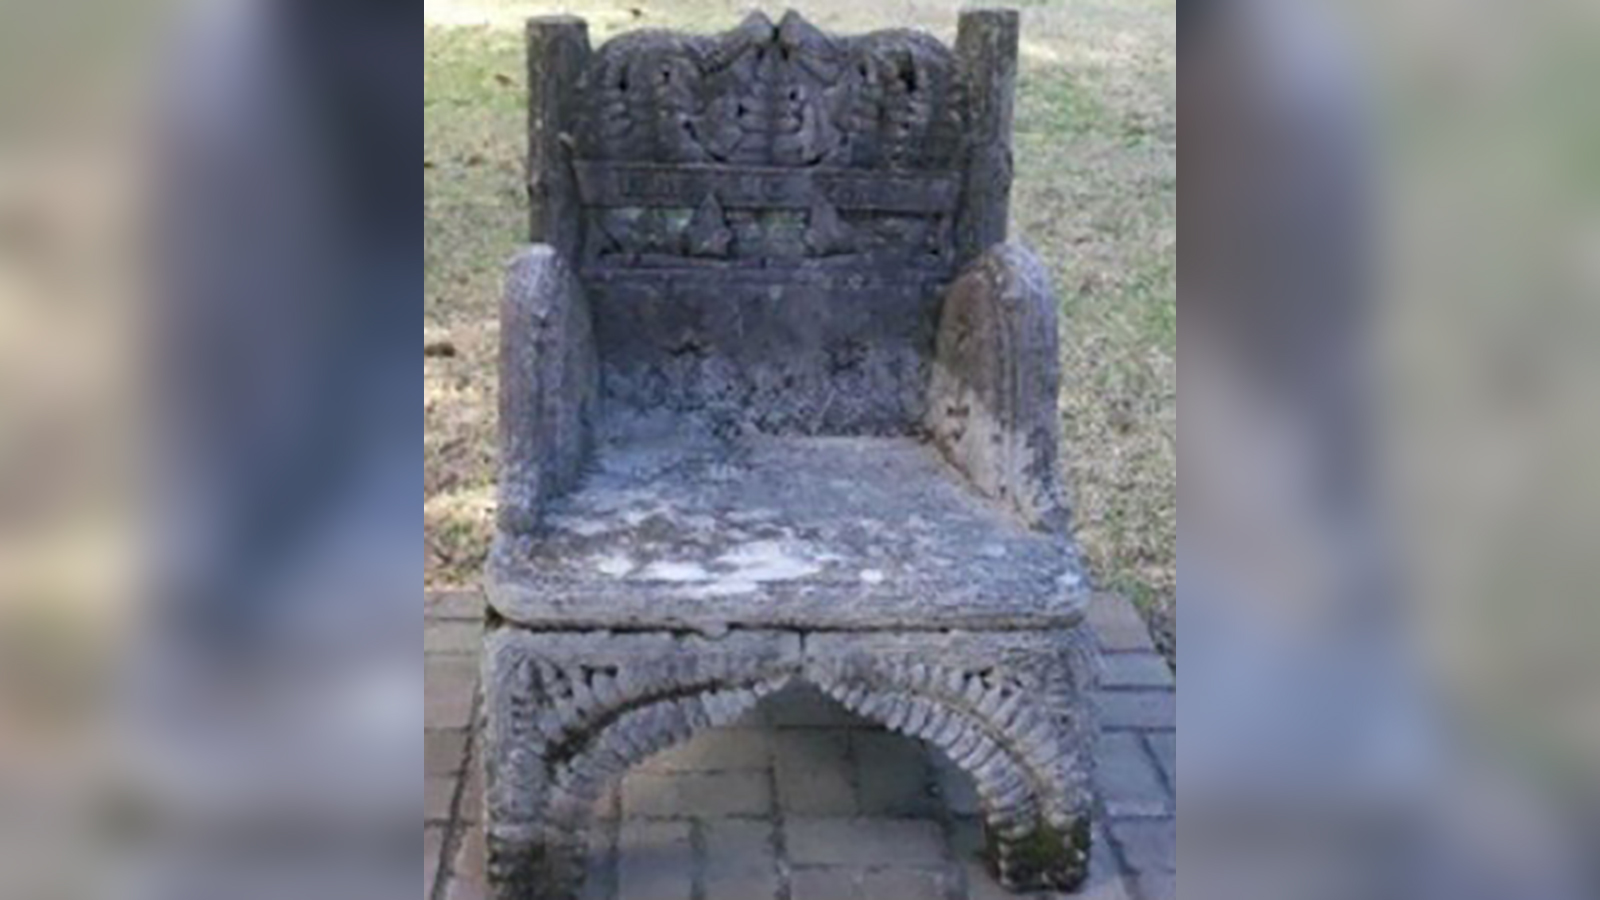 Jefferson Davis' chair, stolen from an Alabama cemetery, has been recovered and 2 people have been arrested